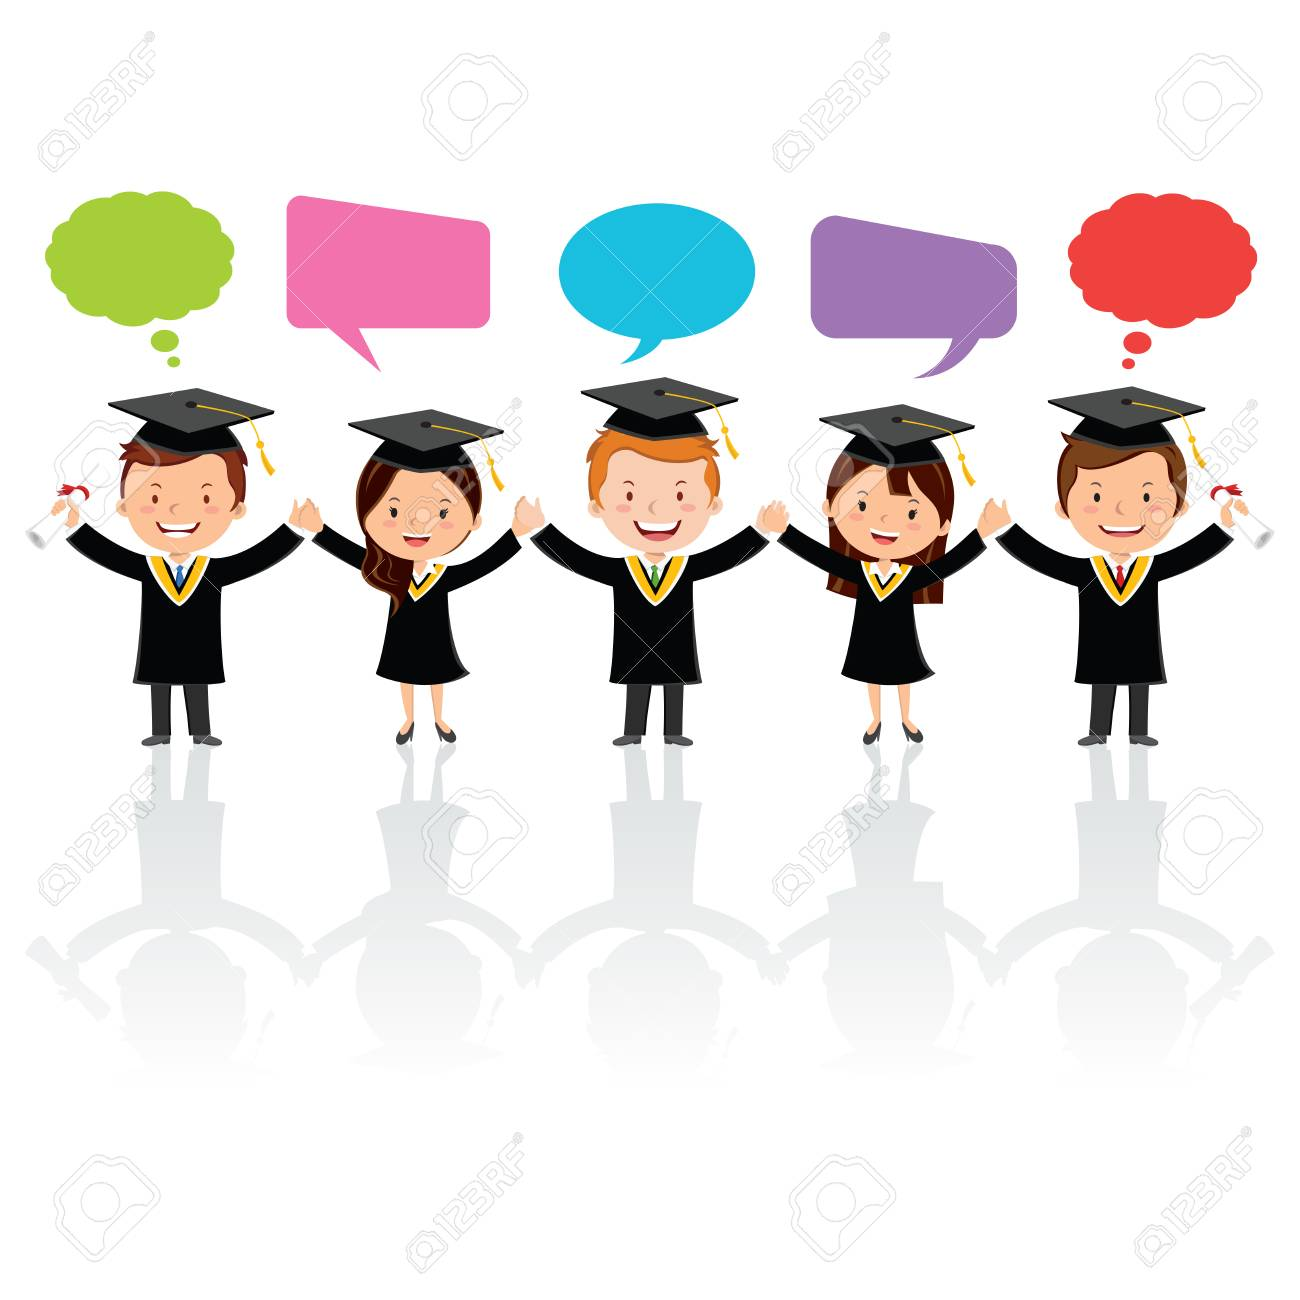 Graduation friends with thinking and speech bubbles  Friendship